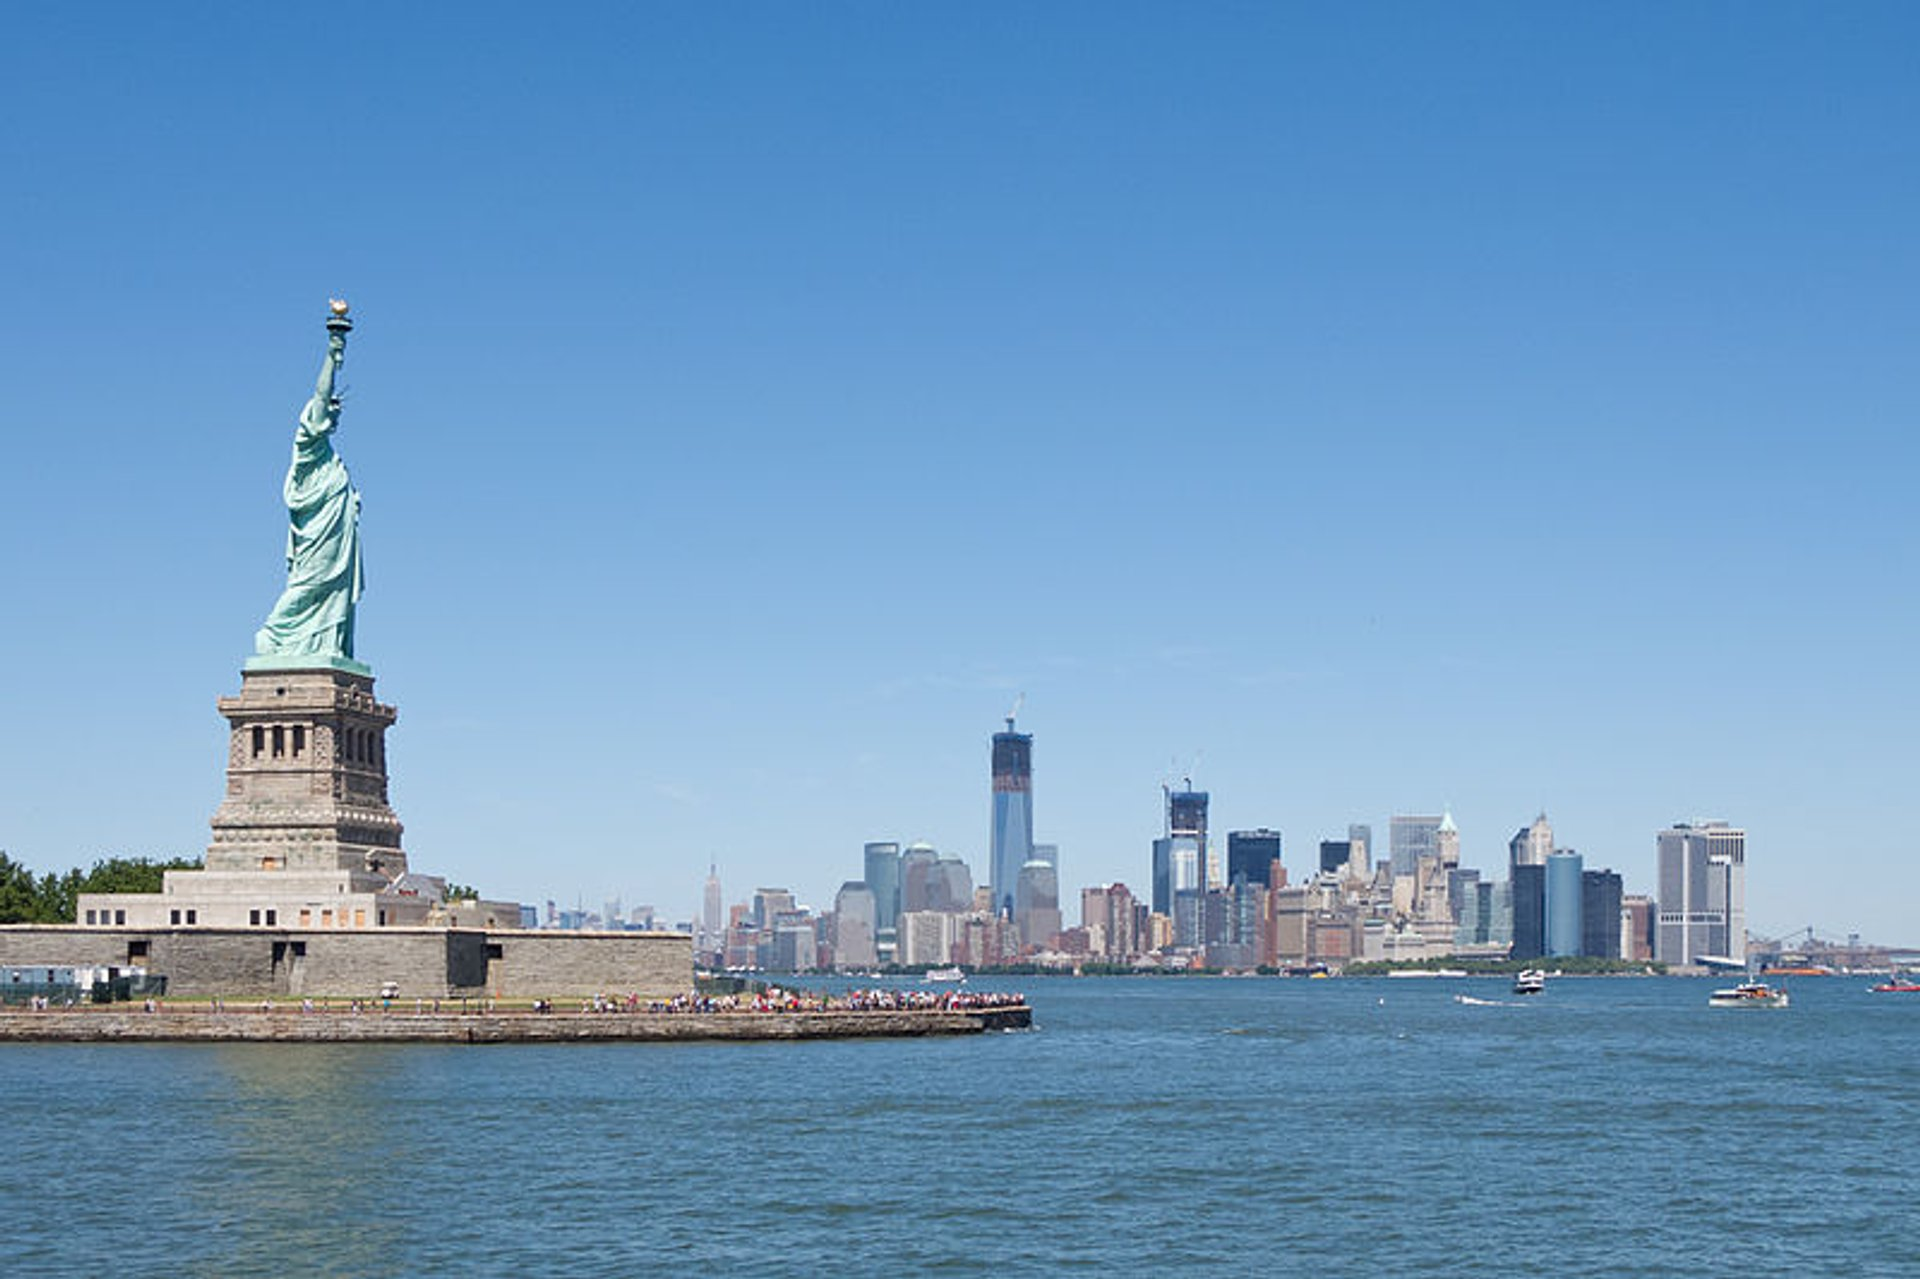 Statue of Liberty in New York 2020 - Best Time